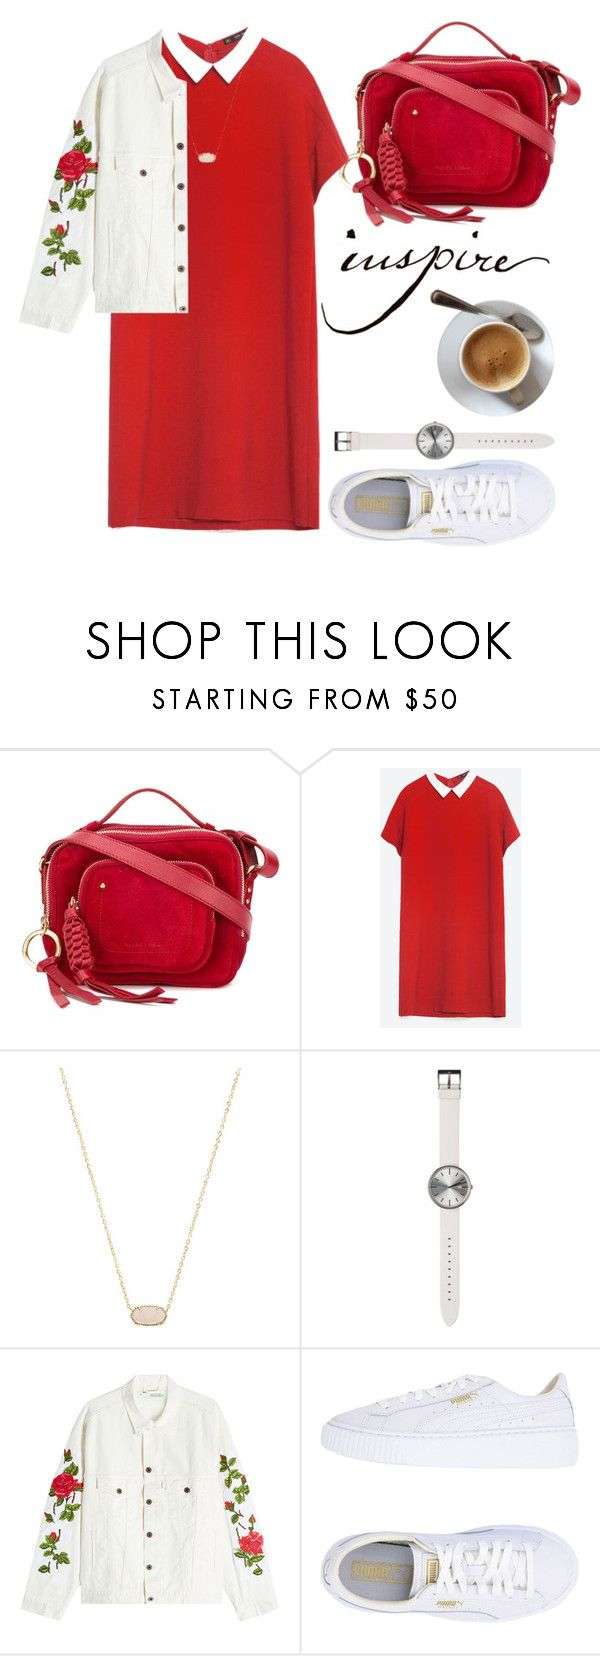 """""""favorite color, red🔥"""" by anncorpse ❤ liked on Polyvore featuring See by Chloé, Zara, Kendra Scott, Uniform Wares, Off-White and Puma"""